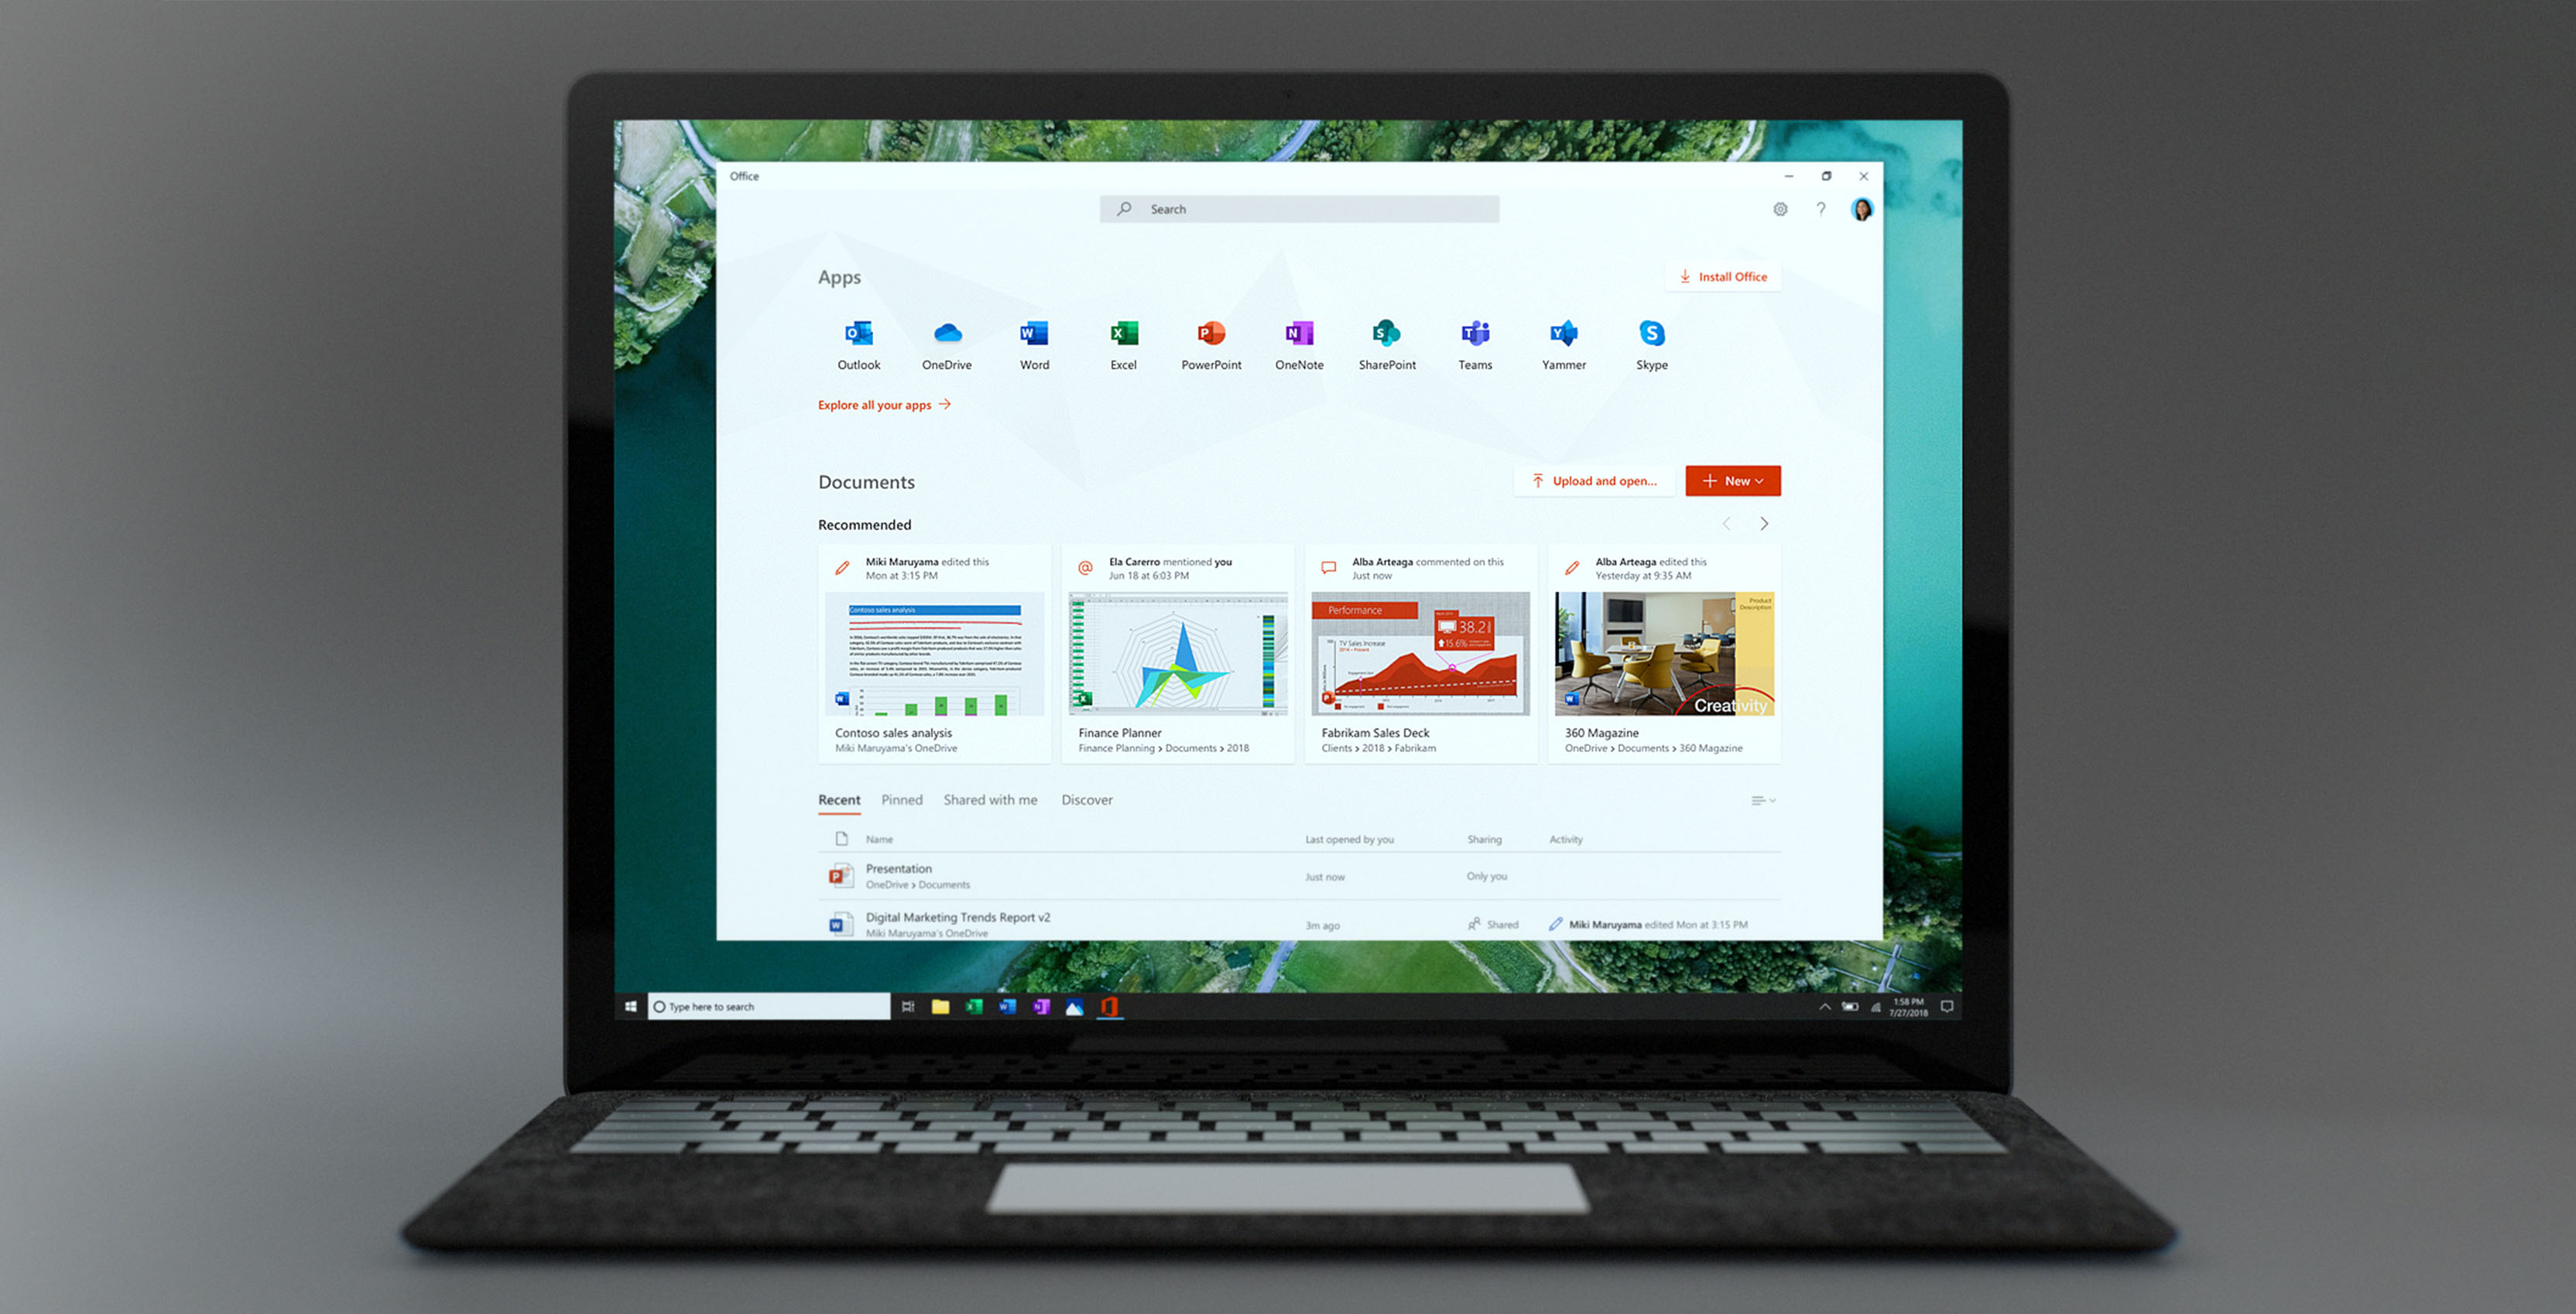 Microsoft has made a free Office app for Windows 10